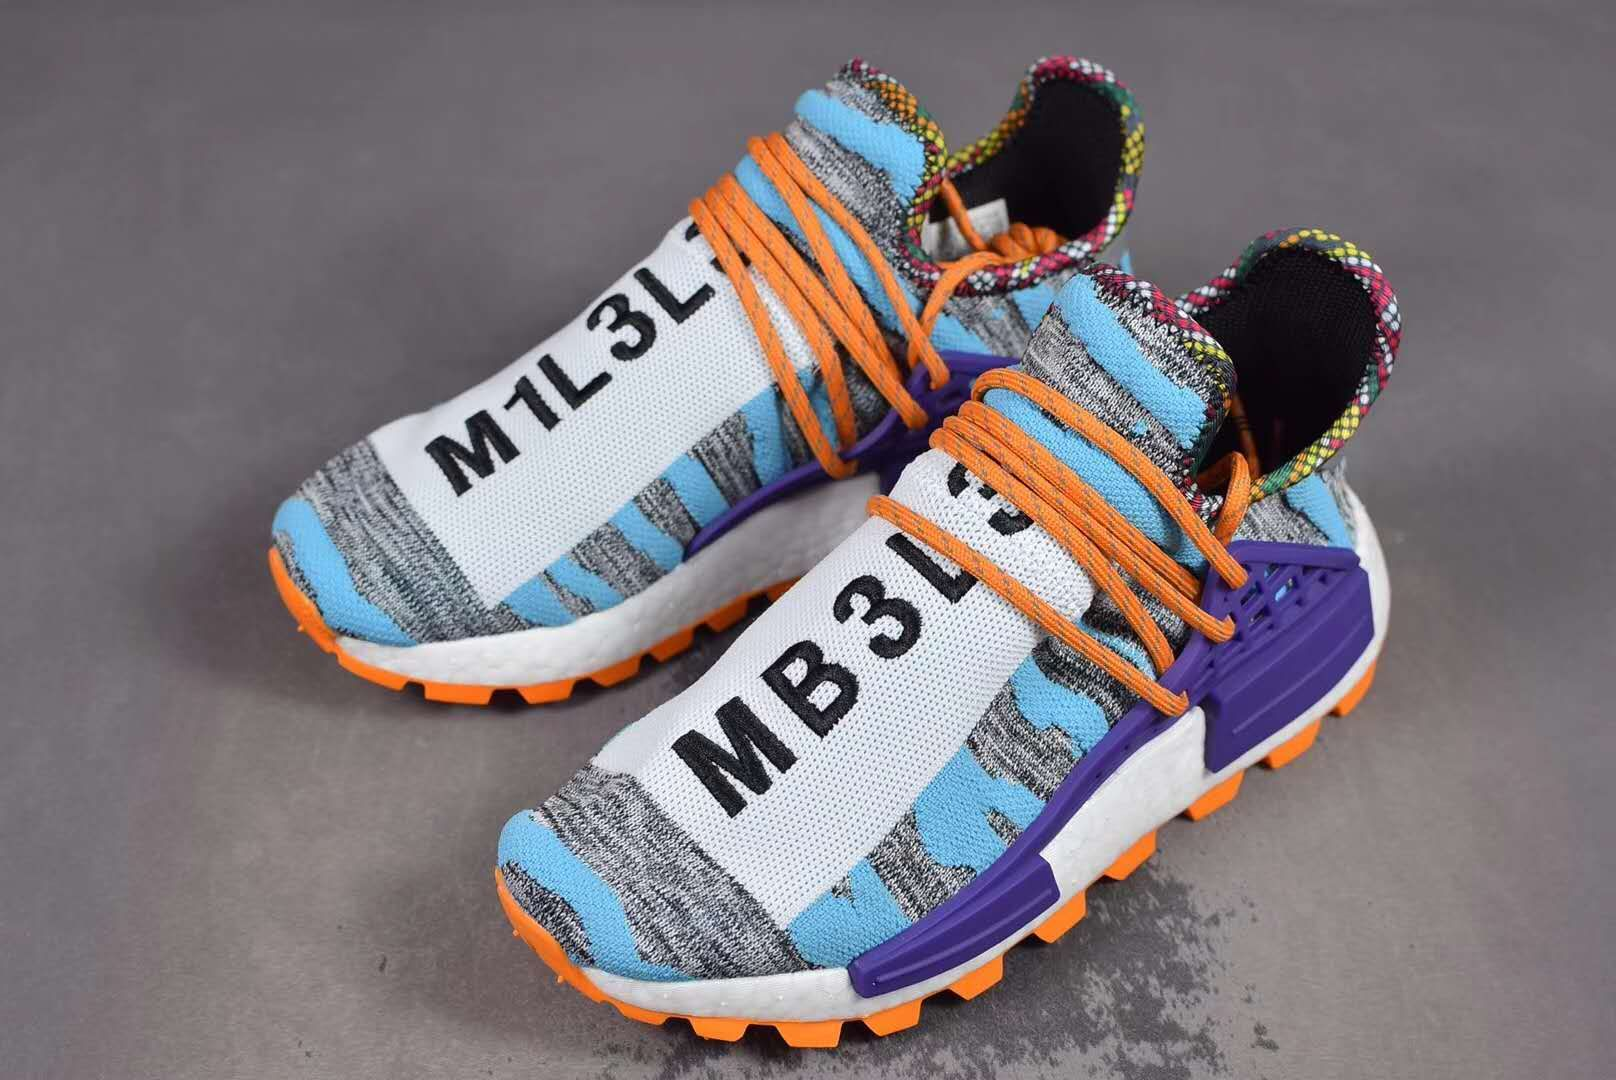 ec866f6c4 Pharrell Williams x Adidas Afro NMD Hu Trail Solar Pack Release Date ...